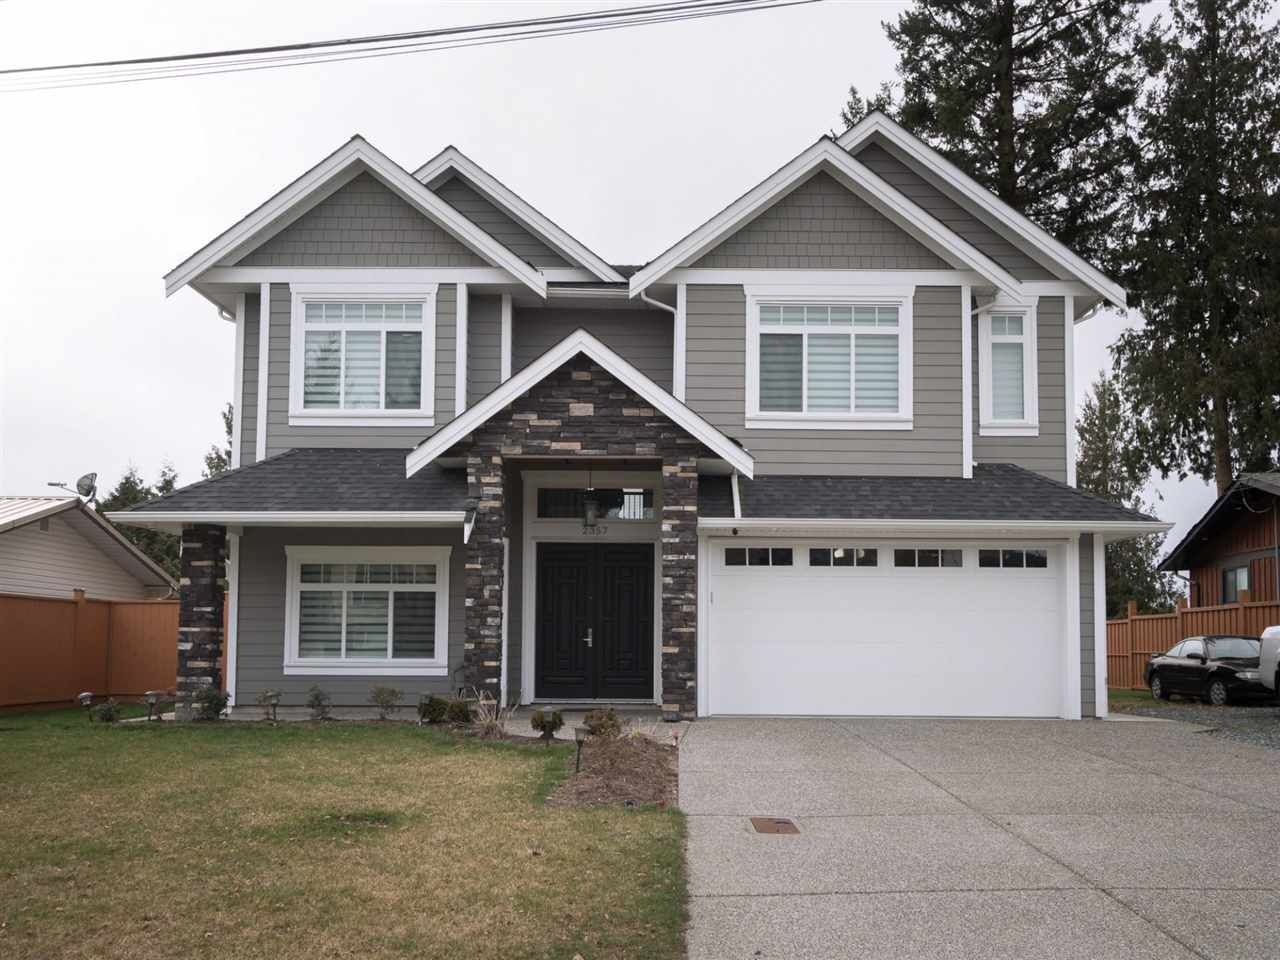 Main Photo: 2357 BEVAN Crescent in Abbotsford: Abbotsford West House for sale : MLS®# R2247485